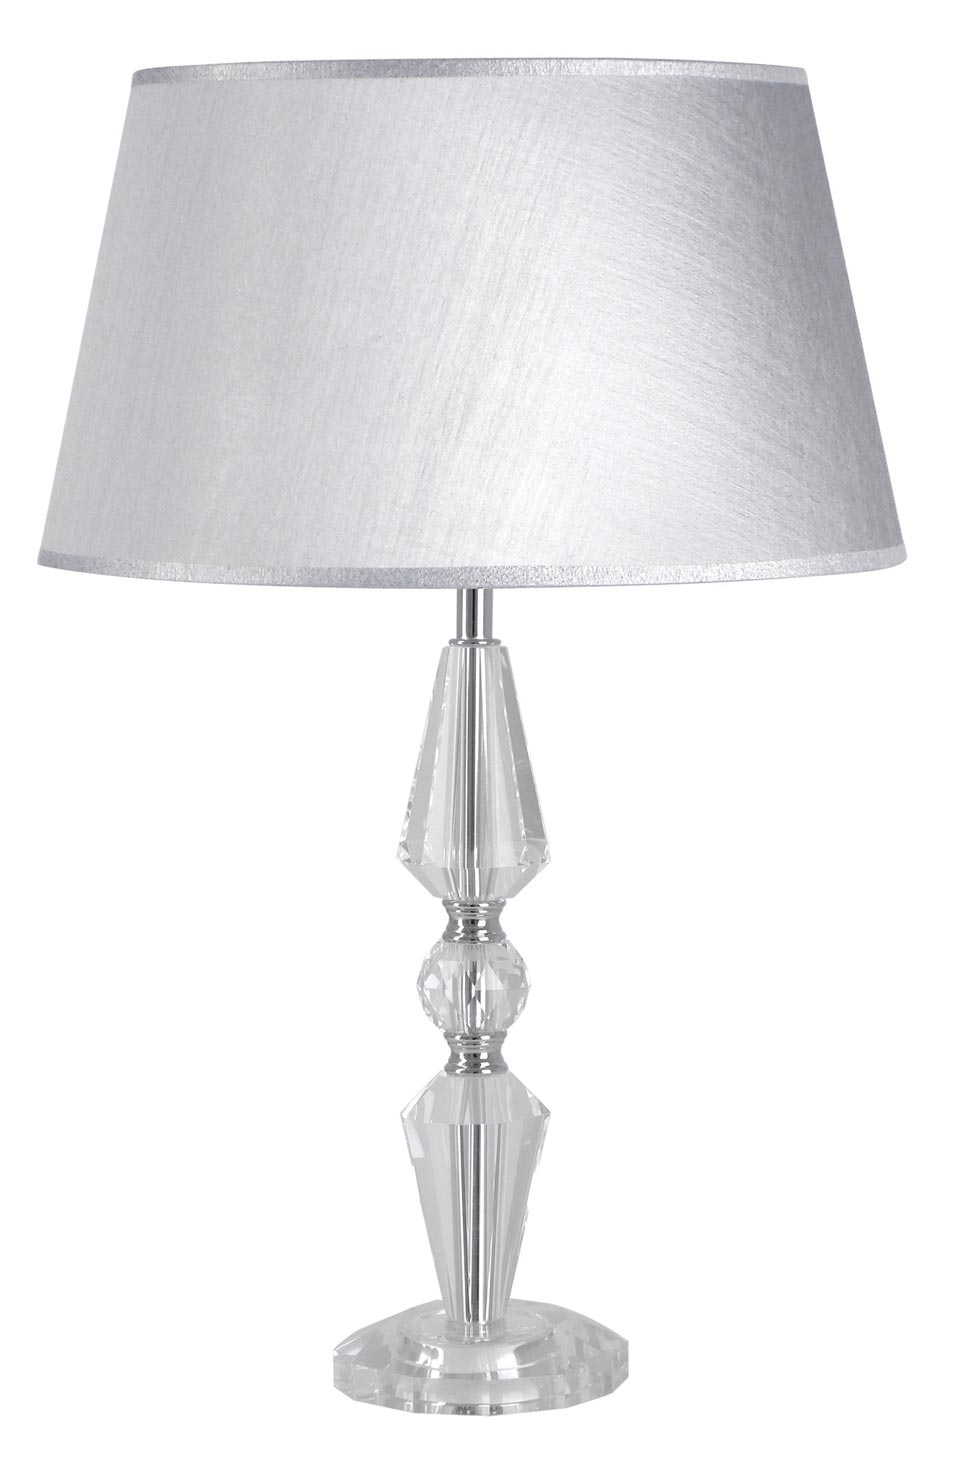 Silver-gray and optical glass table lamp Hermance. Le Dauphin.